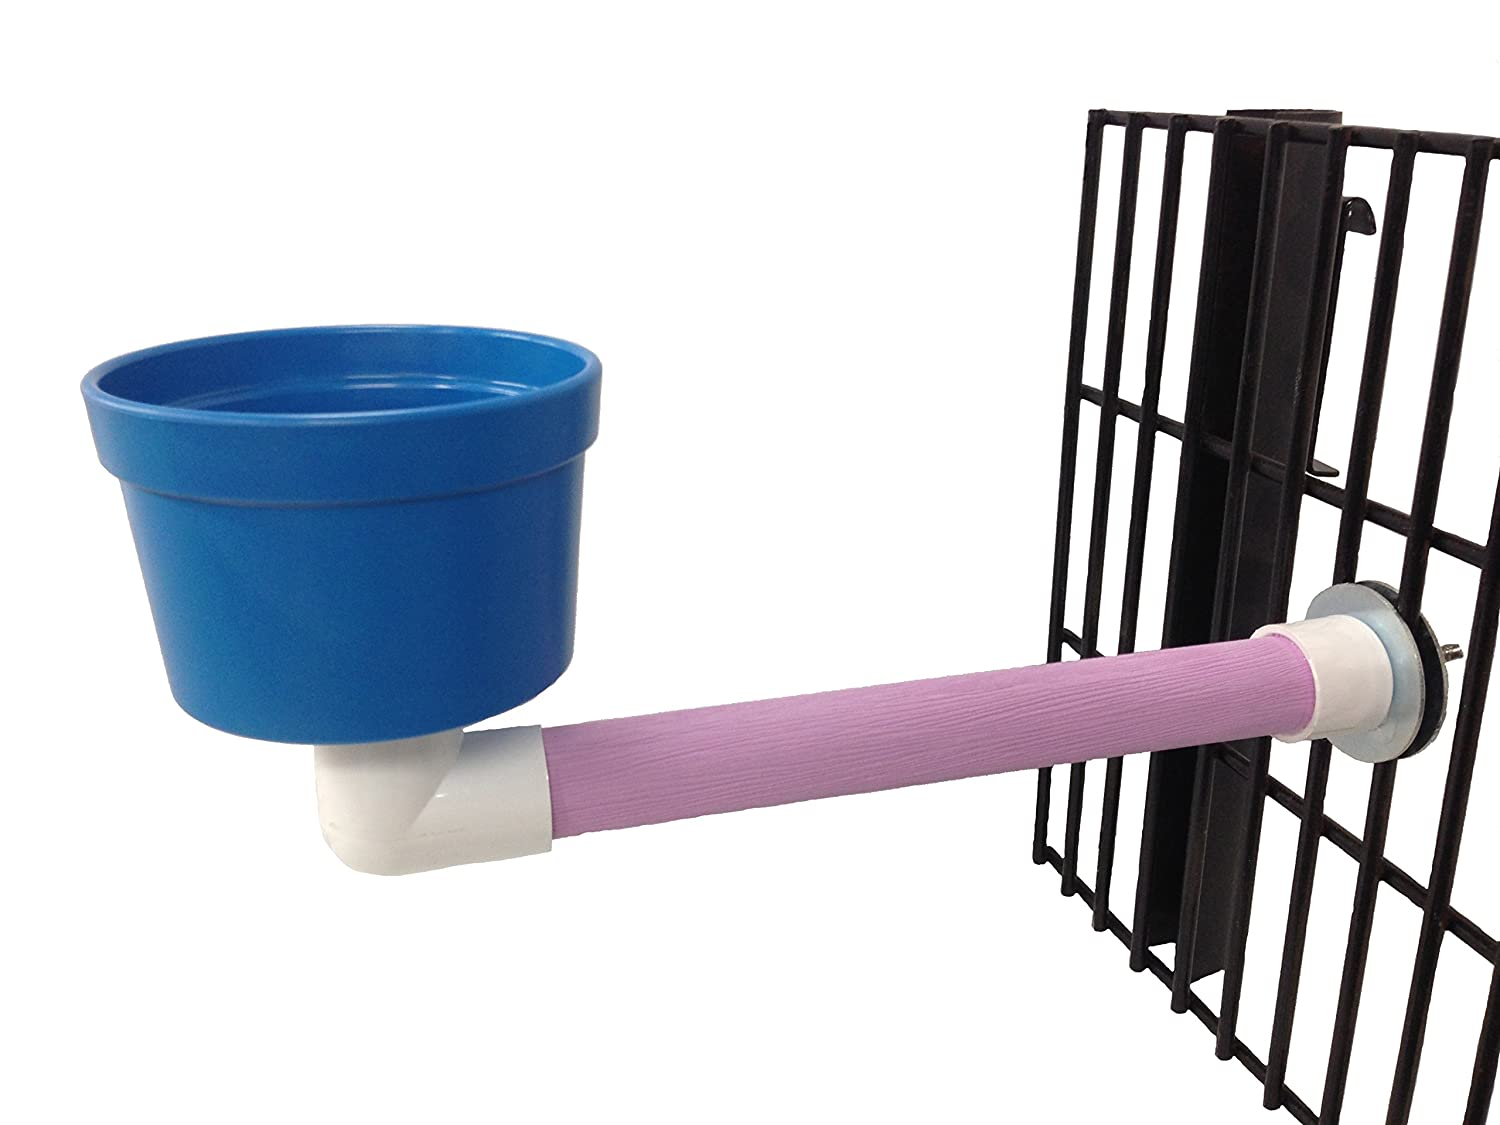 FeatherSmart EZ CLEAN PERCH 'N CUP (Small)